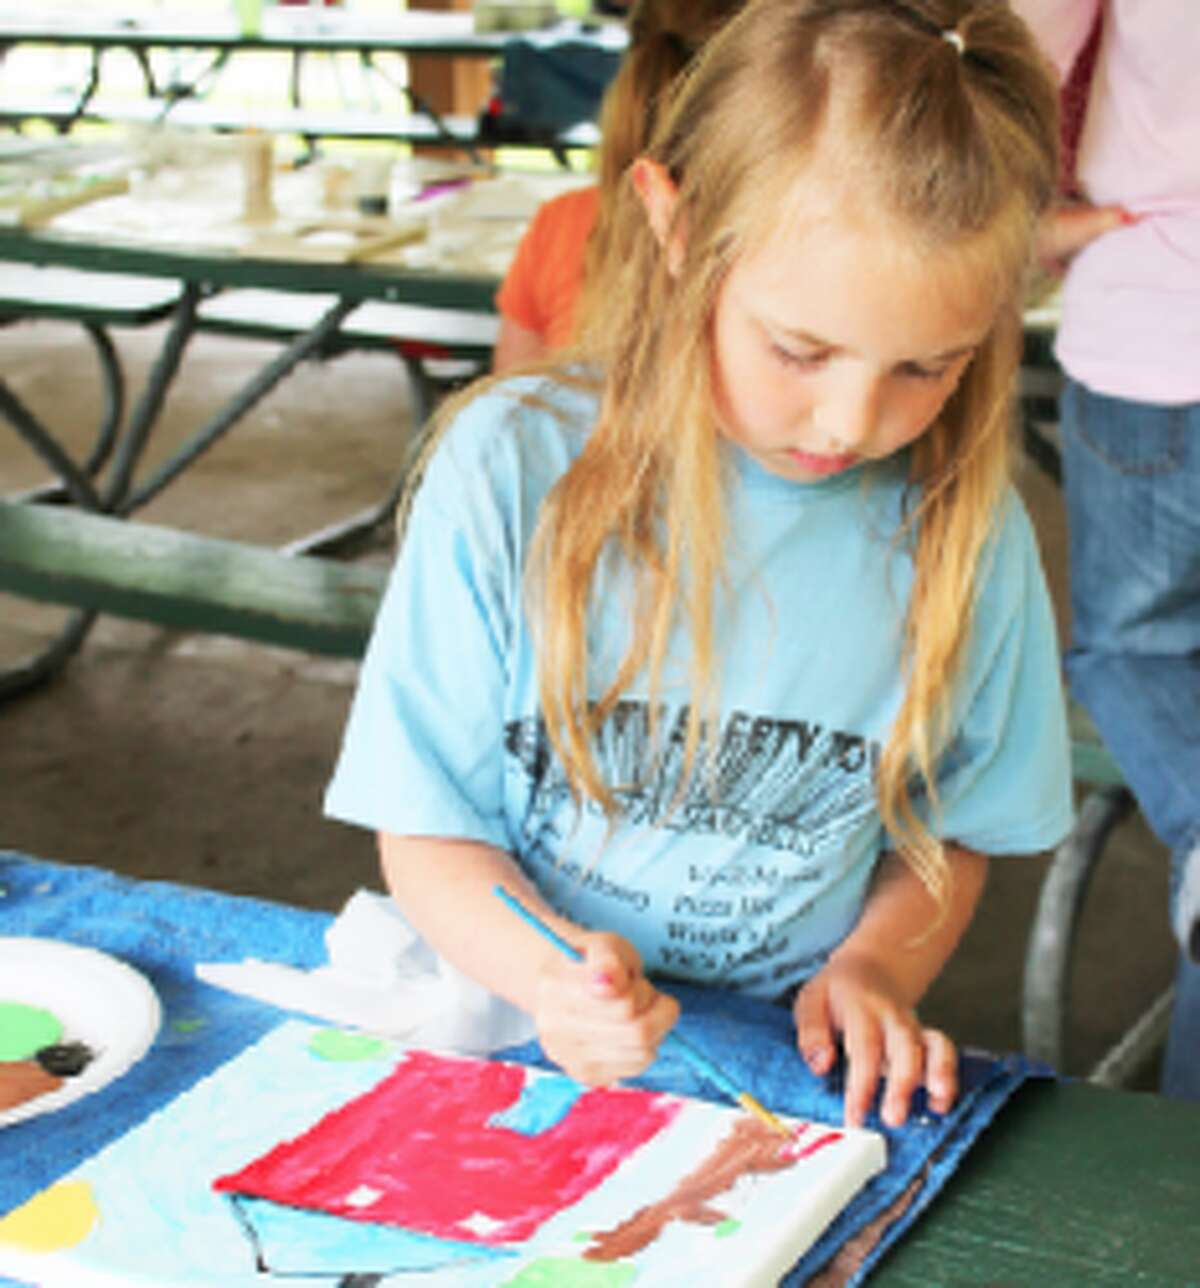 perfecting her art: Lauren McCarver, 7, has become quite a regular at Art in the Park. She enjoyed painting her family home. (Herald Review/Shannon Hartley)